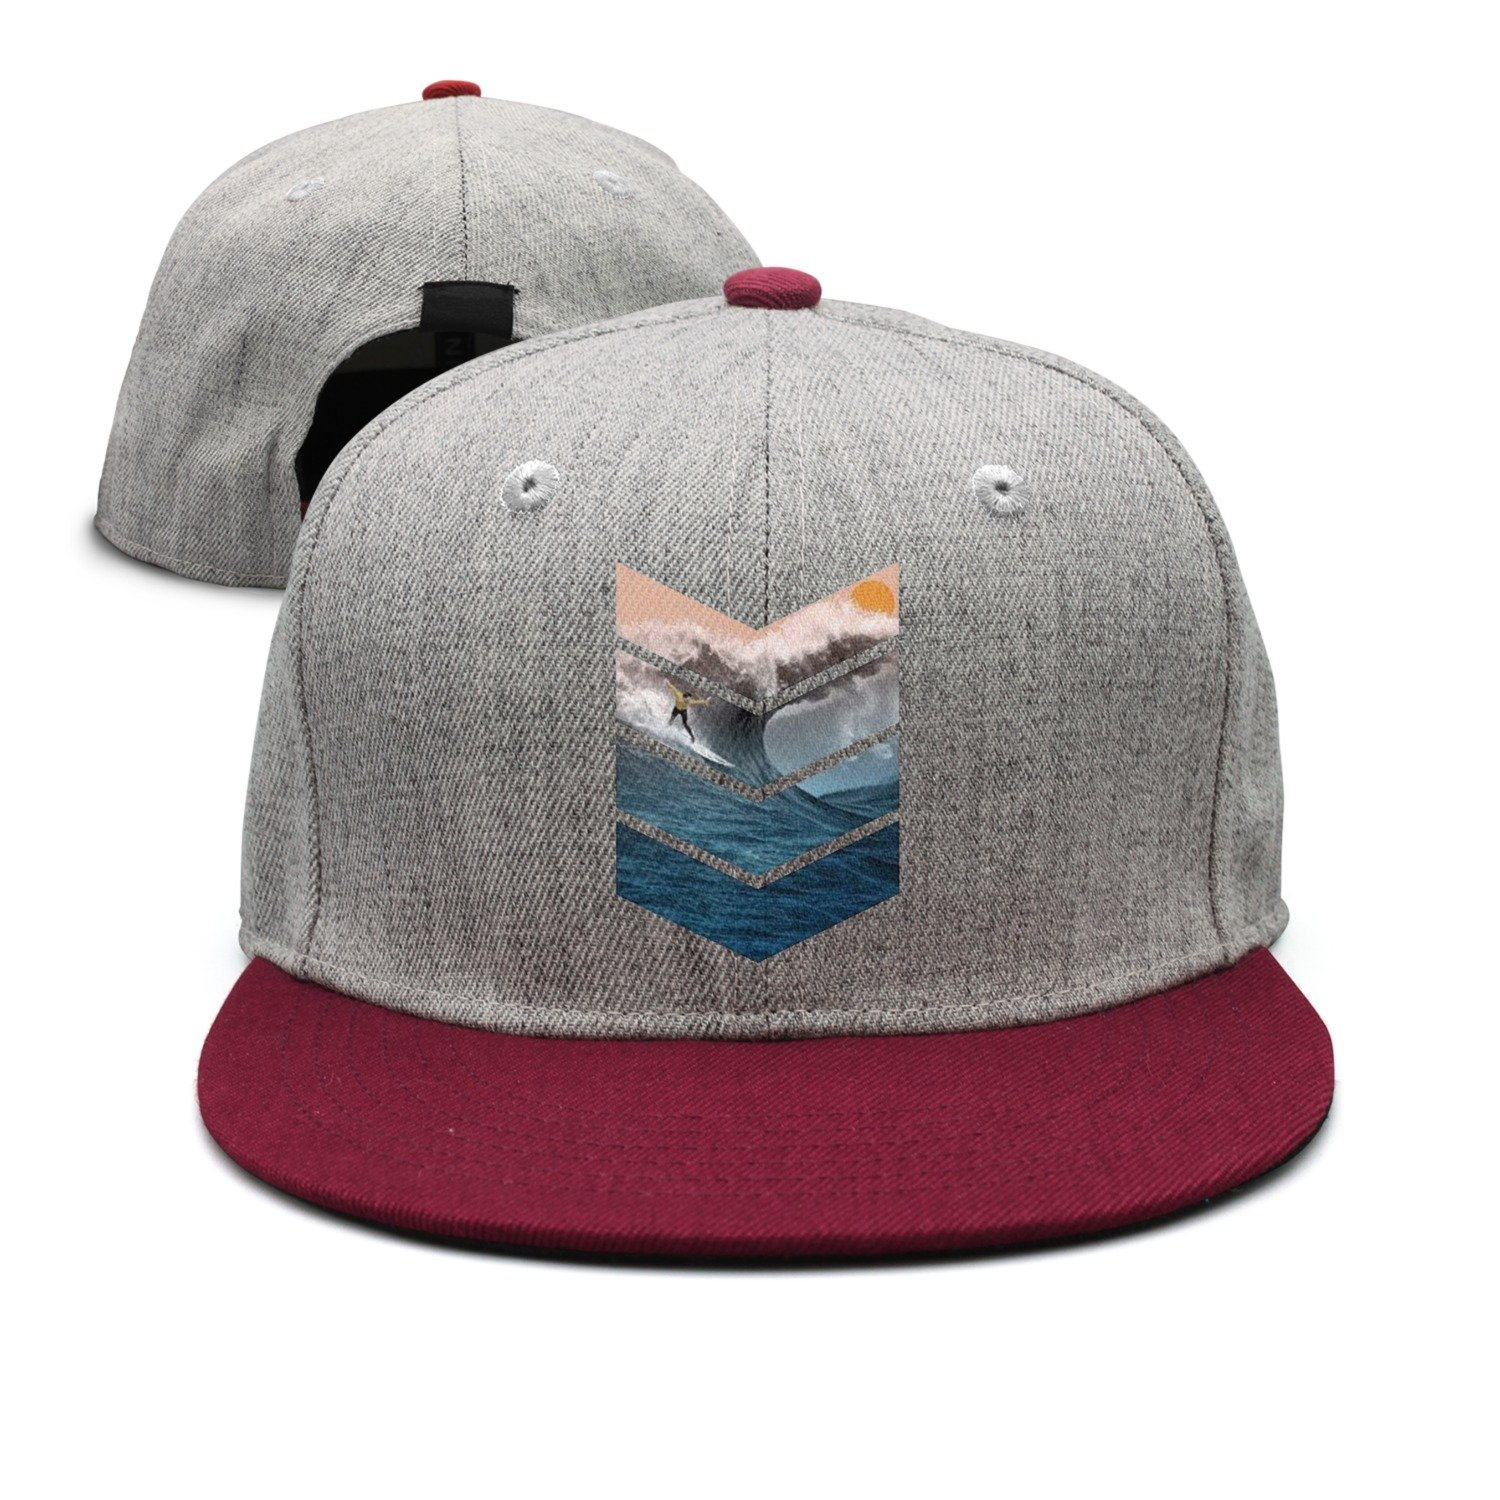 Sunrise Surfer Toddler Snapback Hats Designer SkyBlue It's For Toddler.